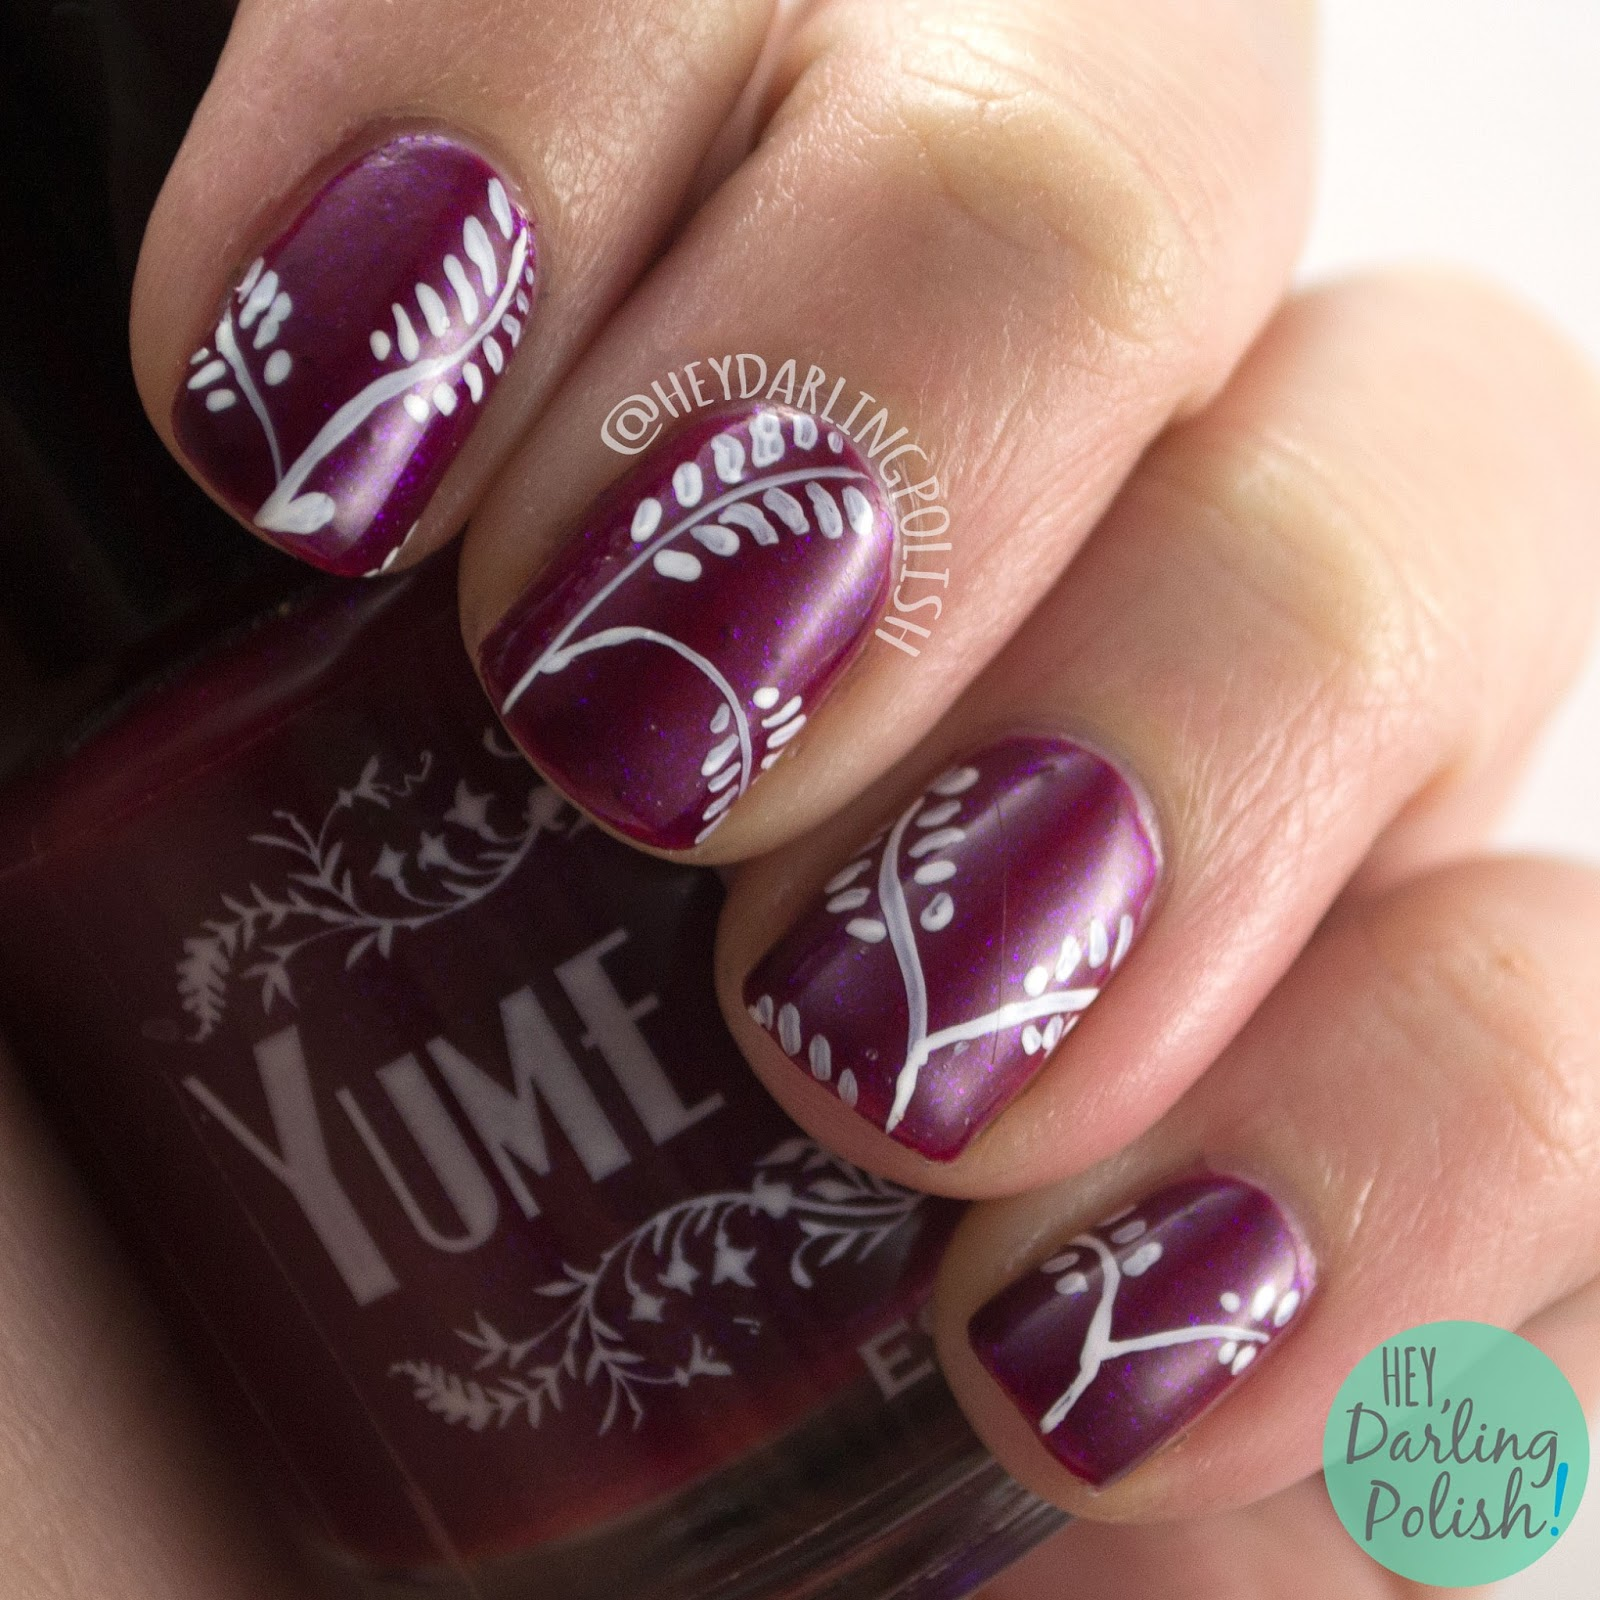 nails, nail art, nail polish, wallpaper, hey darling polish, leaves, branch, maroon, the nail challenge collaborative